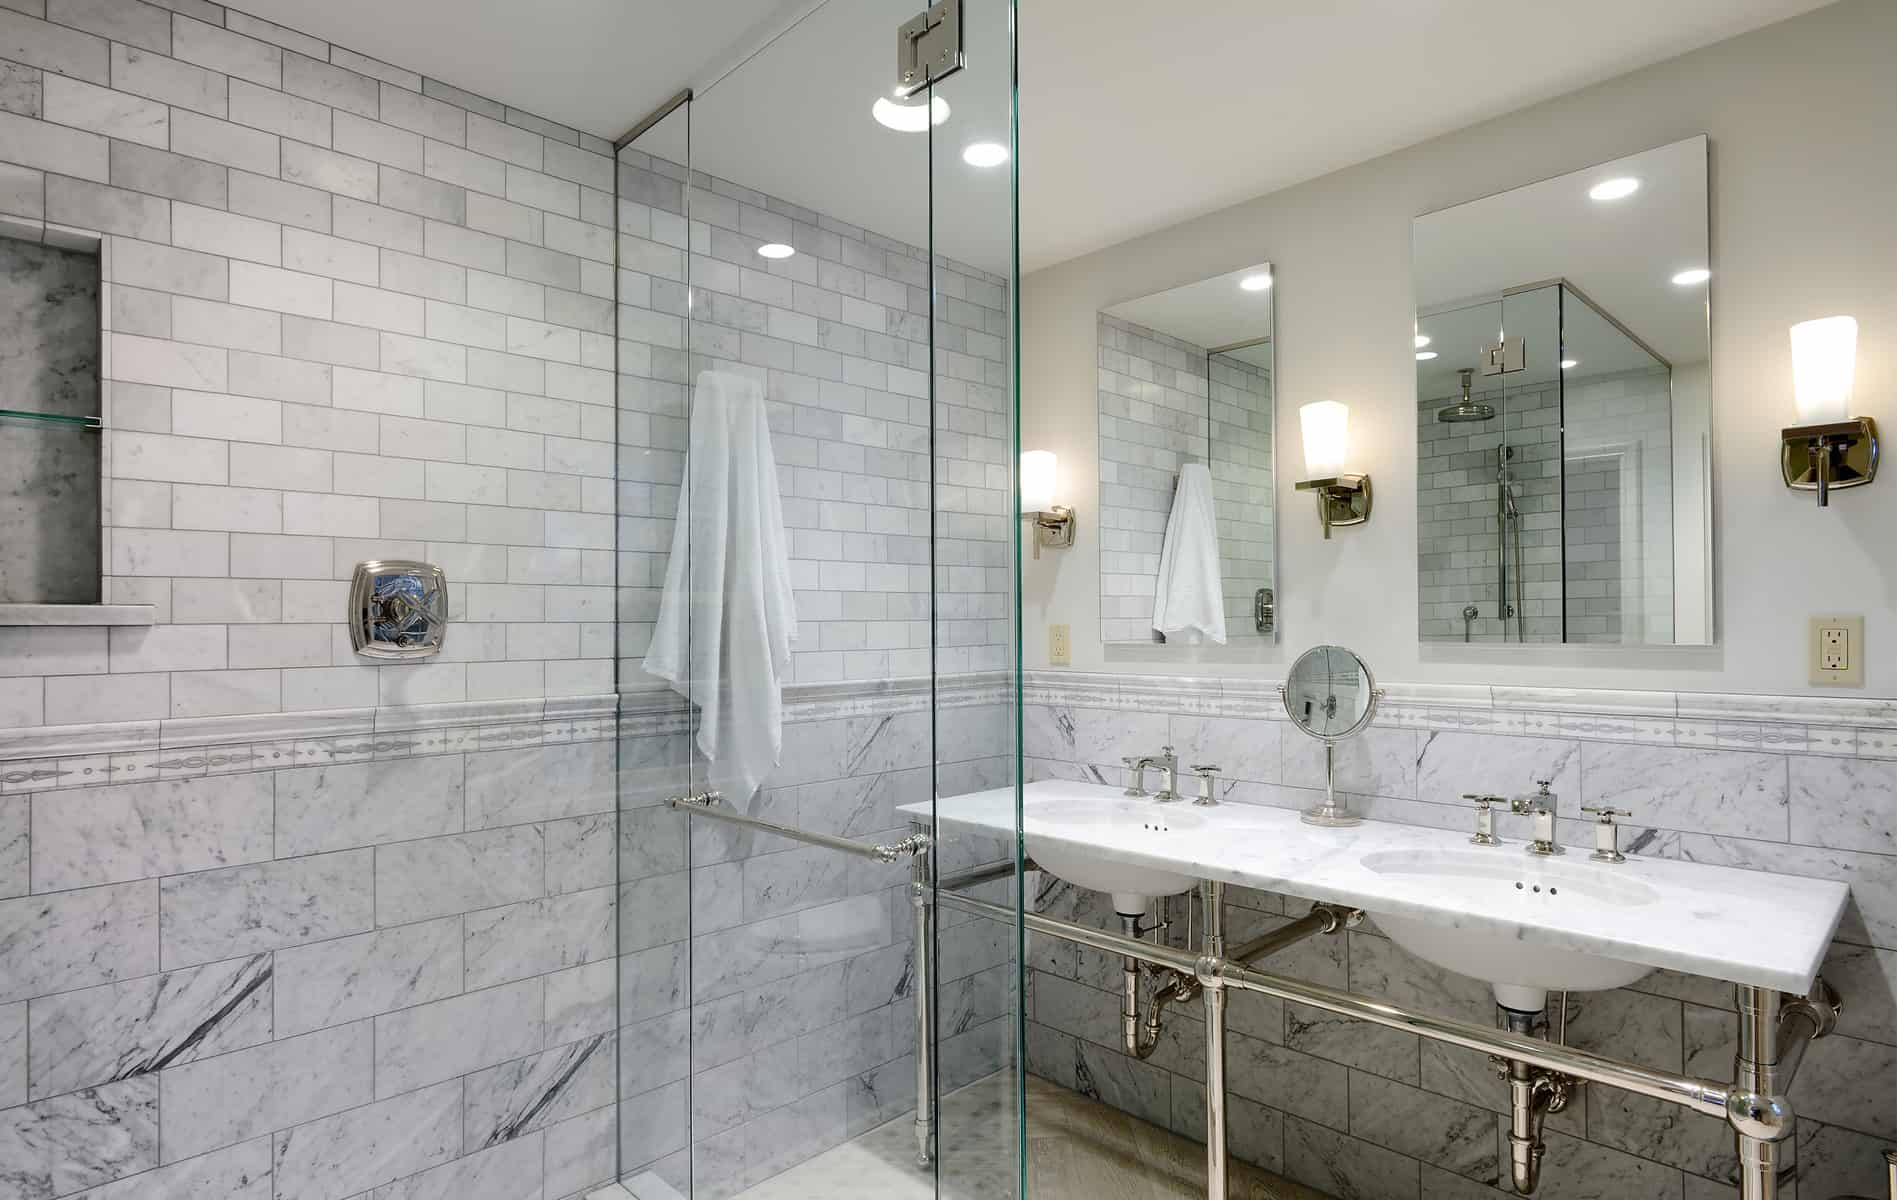 7 smart strategies for bathroom remodeling biederman - Pictures of remodeled small bathrooms ...